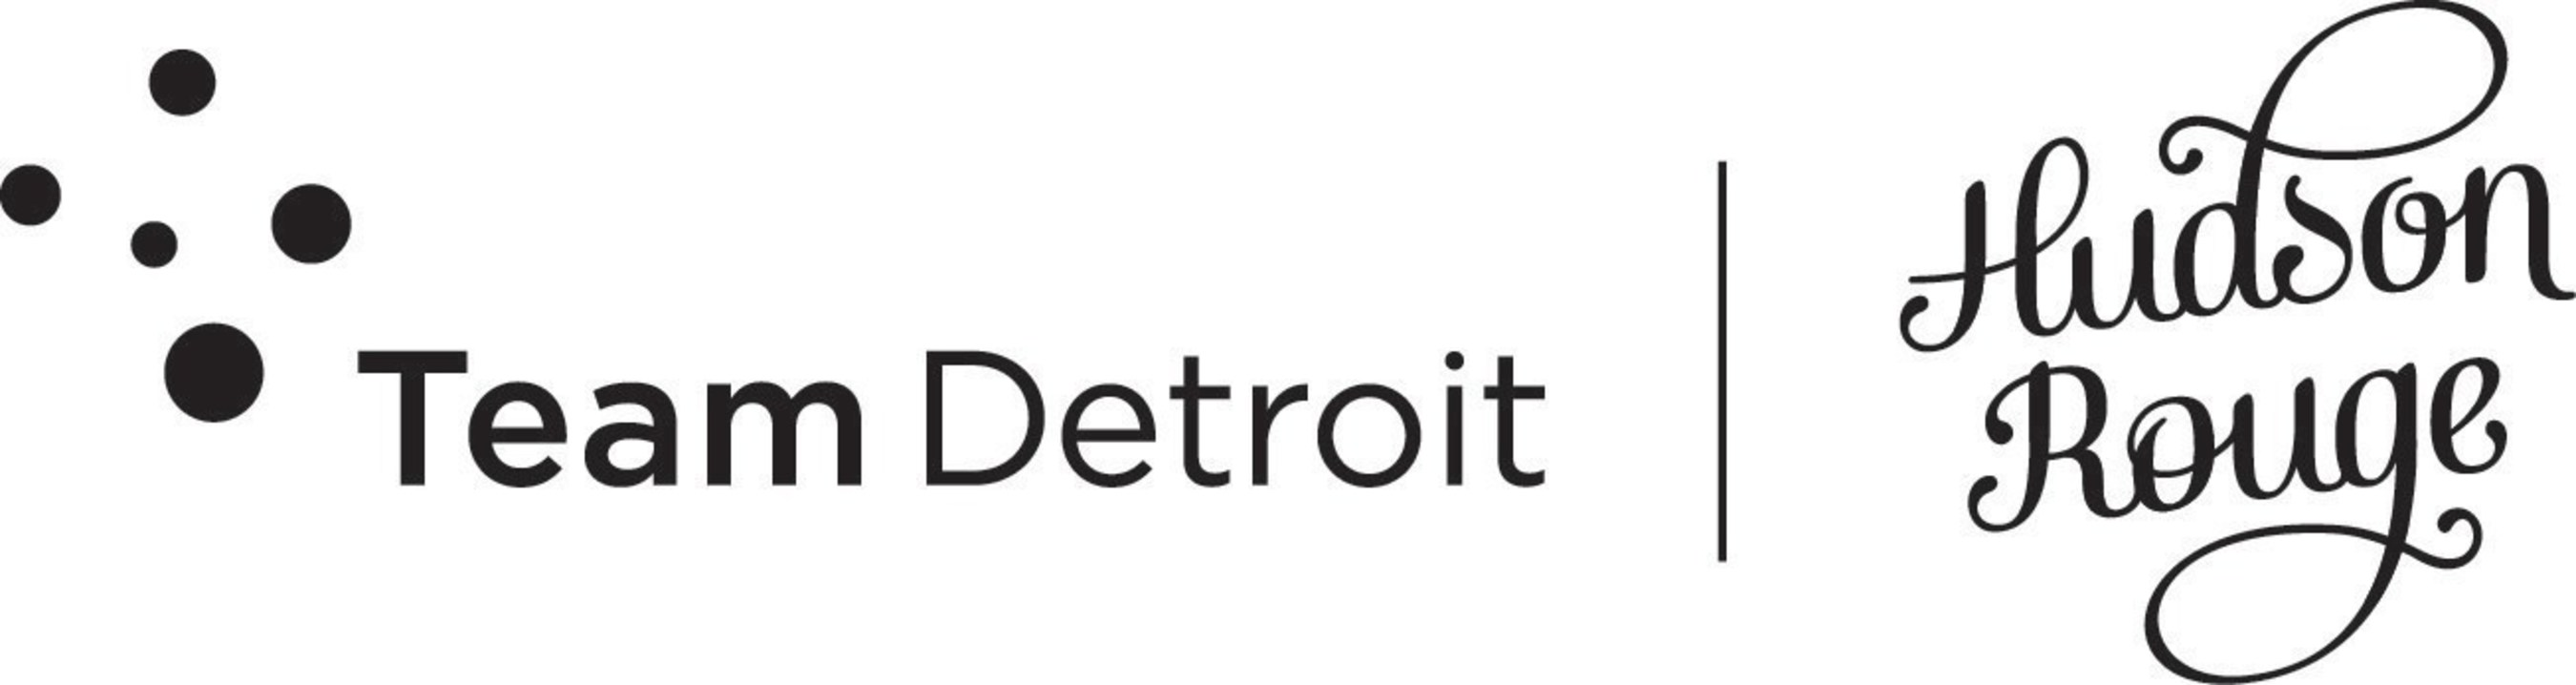 WPP's Team Detroit Celebrates Earth Day, Installs EV Charging Stations